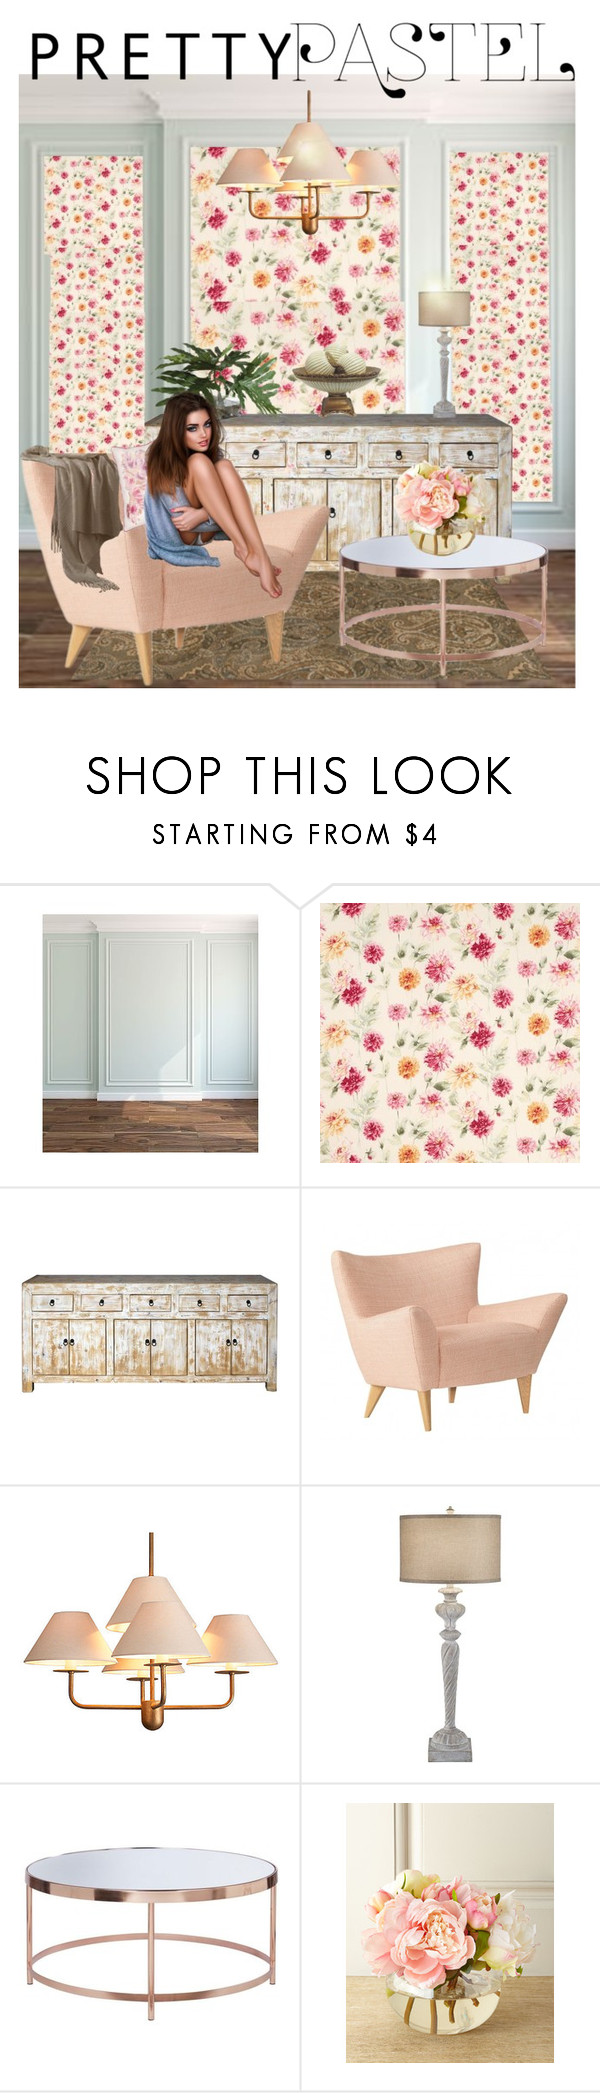 """Pretty Pastels"" by julidrops ❤ liked on Polyvore featuring interior, interiors, interior design, home, home decor, interior decorating, Niermann Weeks, JAlexander, Laura Ashley and John-Richard"